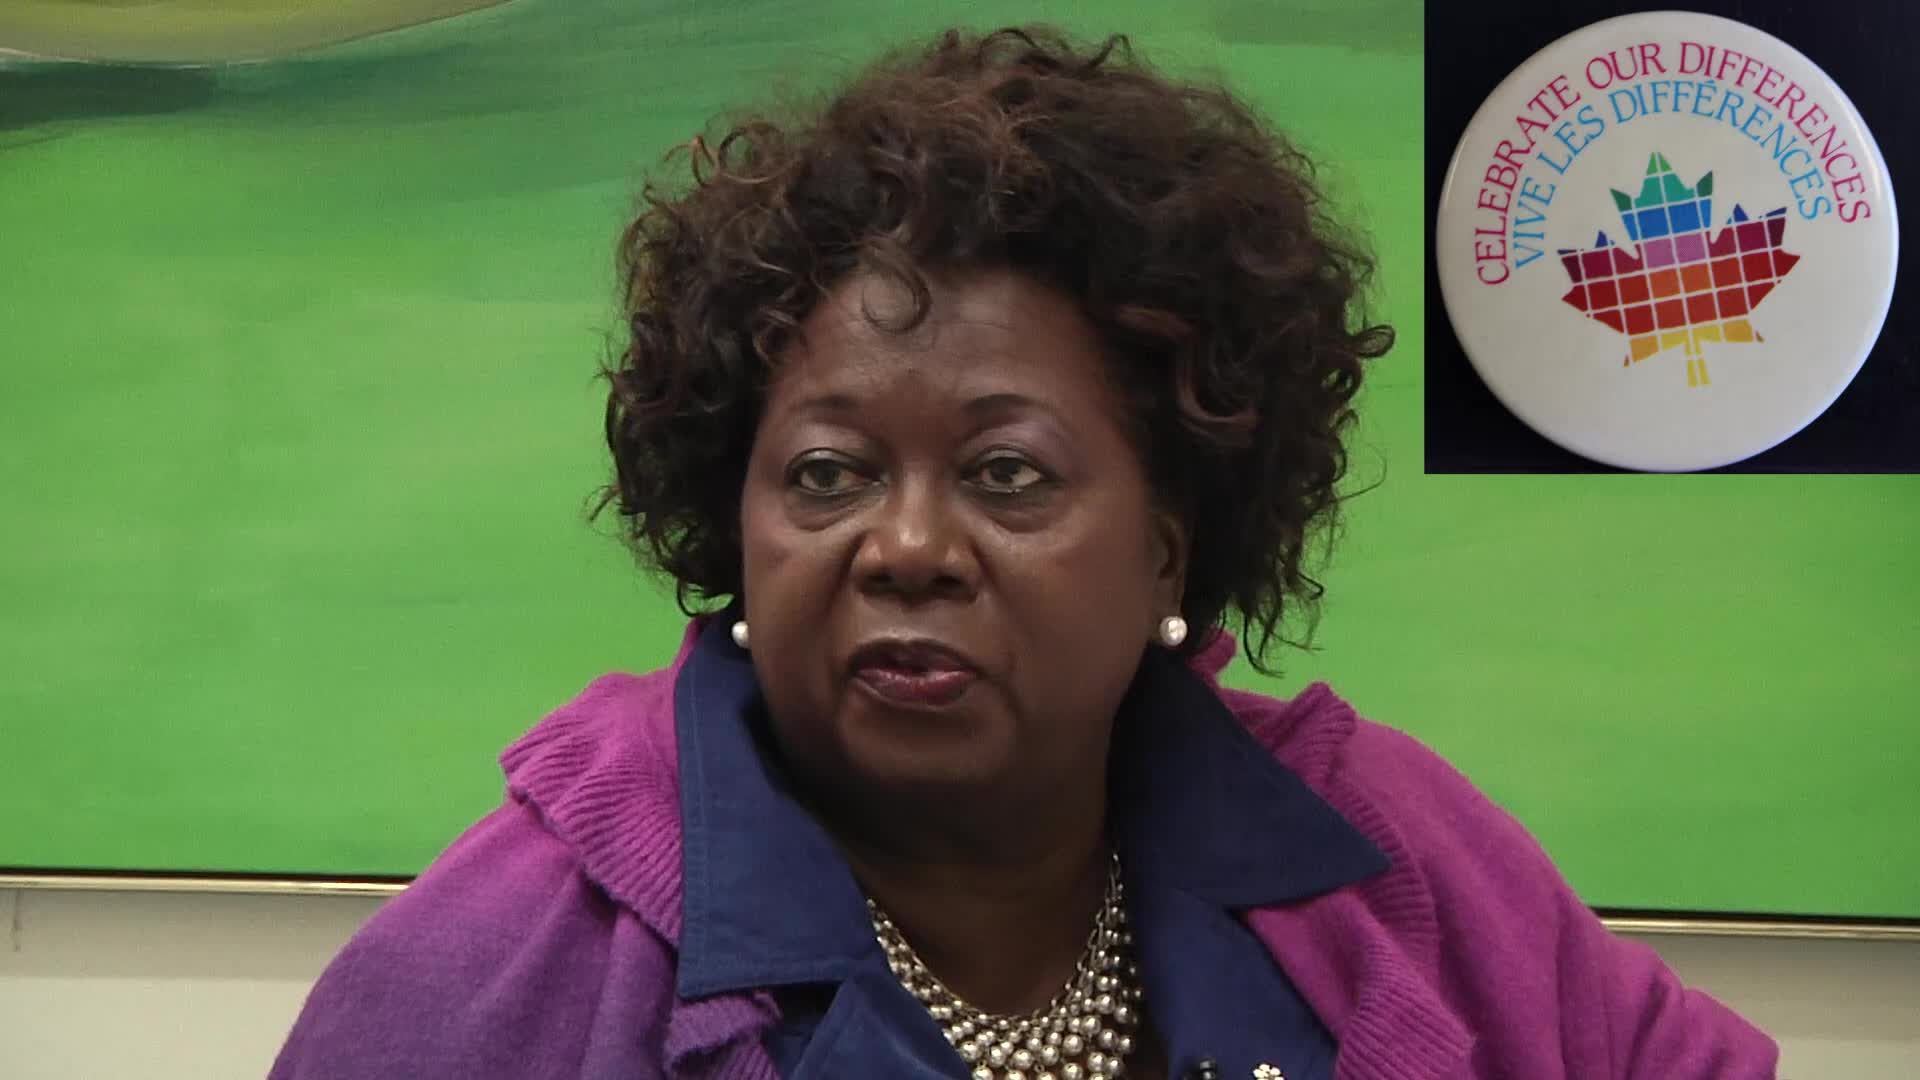 Jean Augustine interview: Celebrate our Differences button